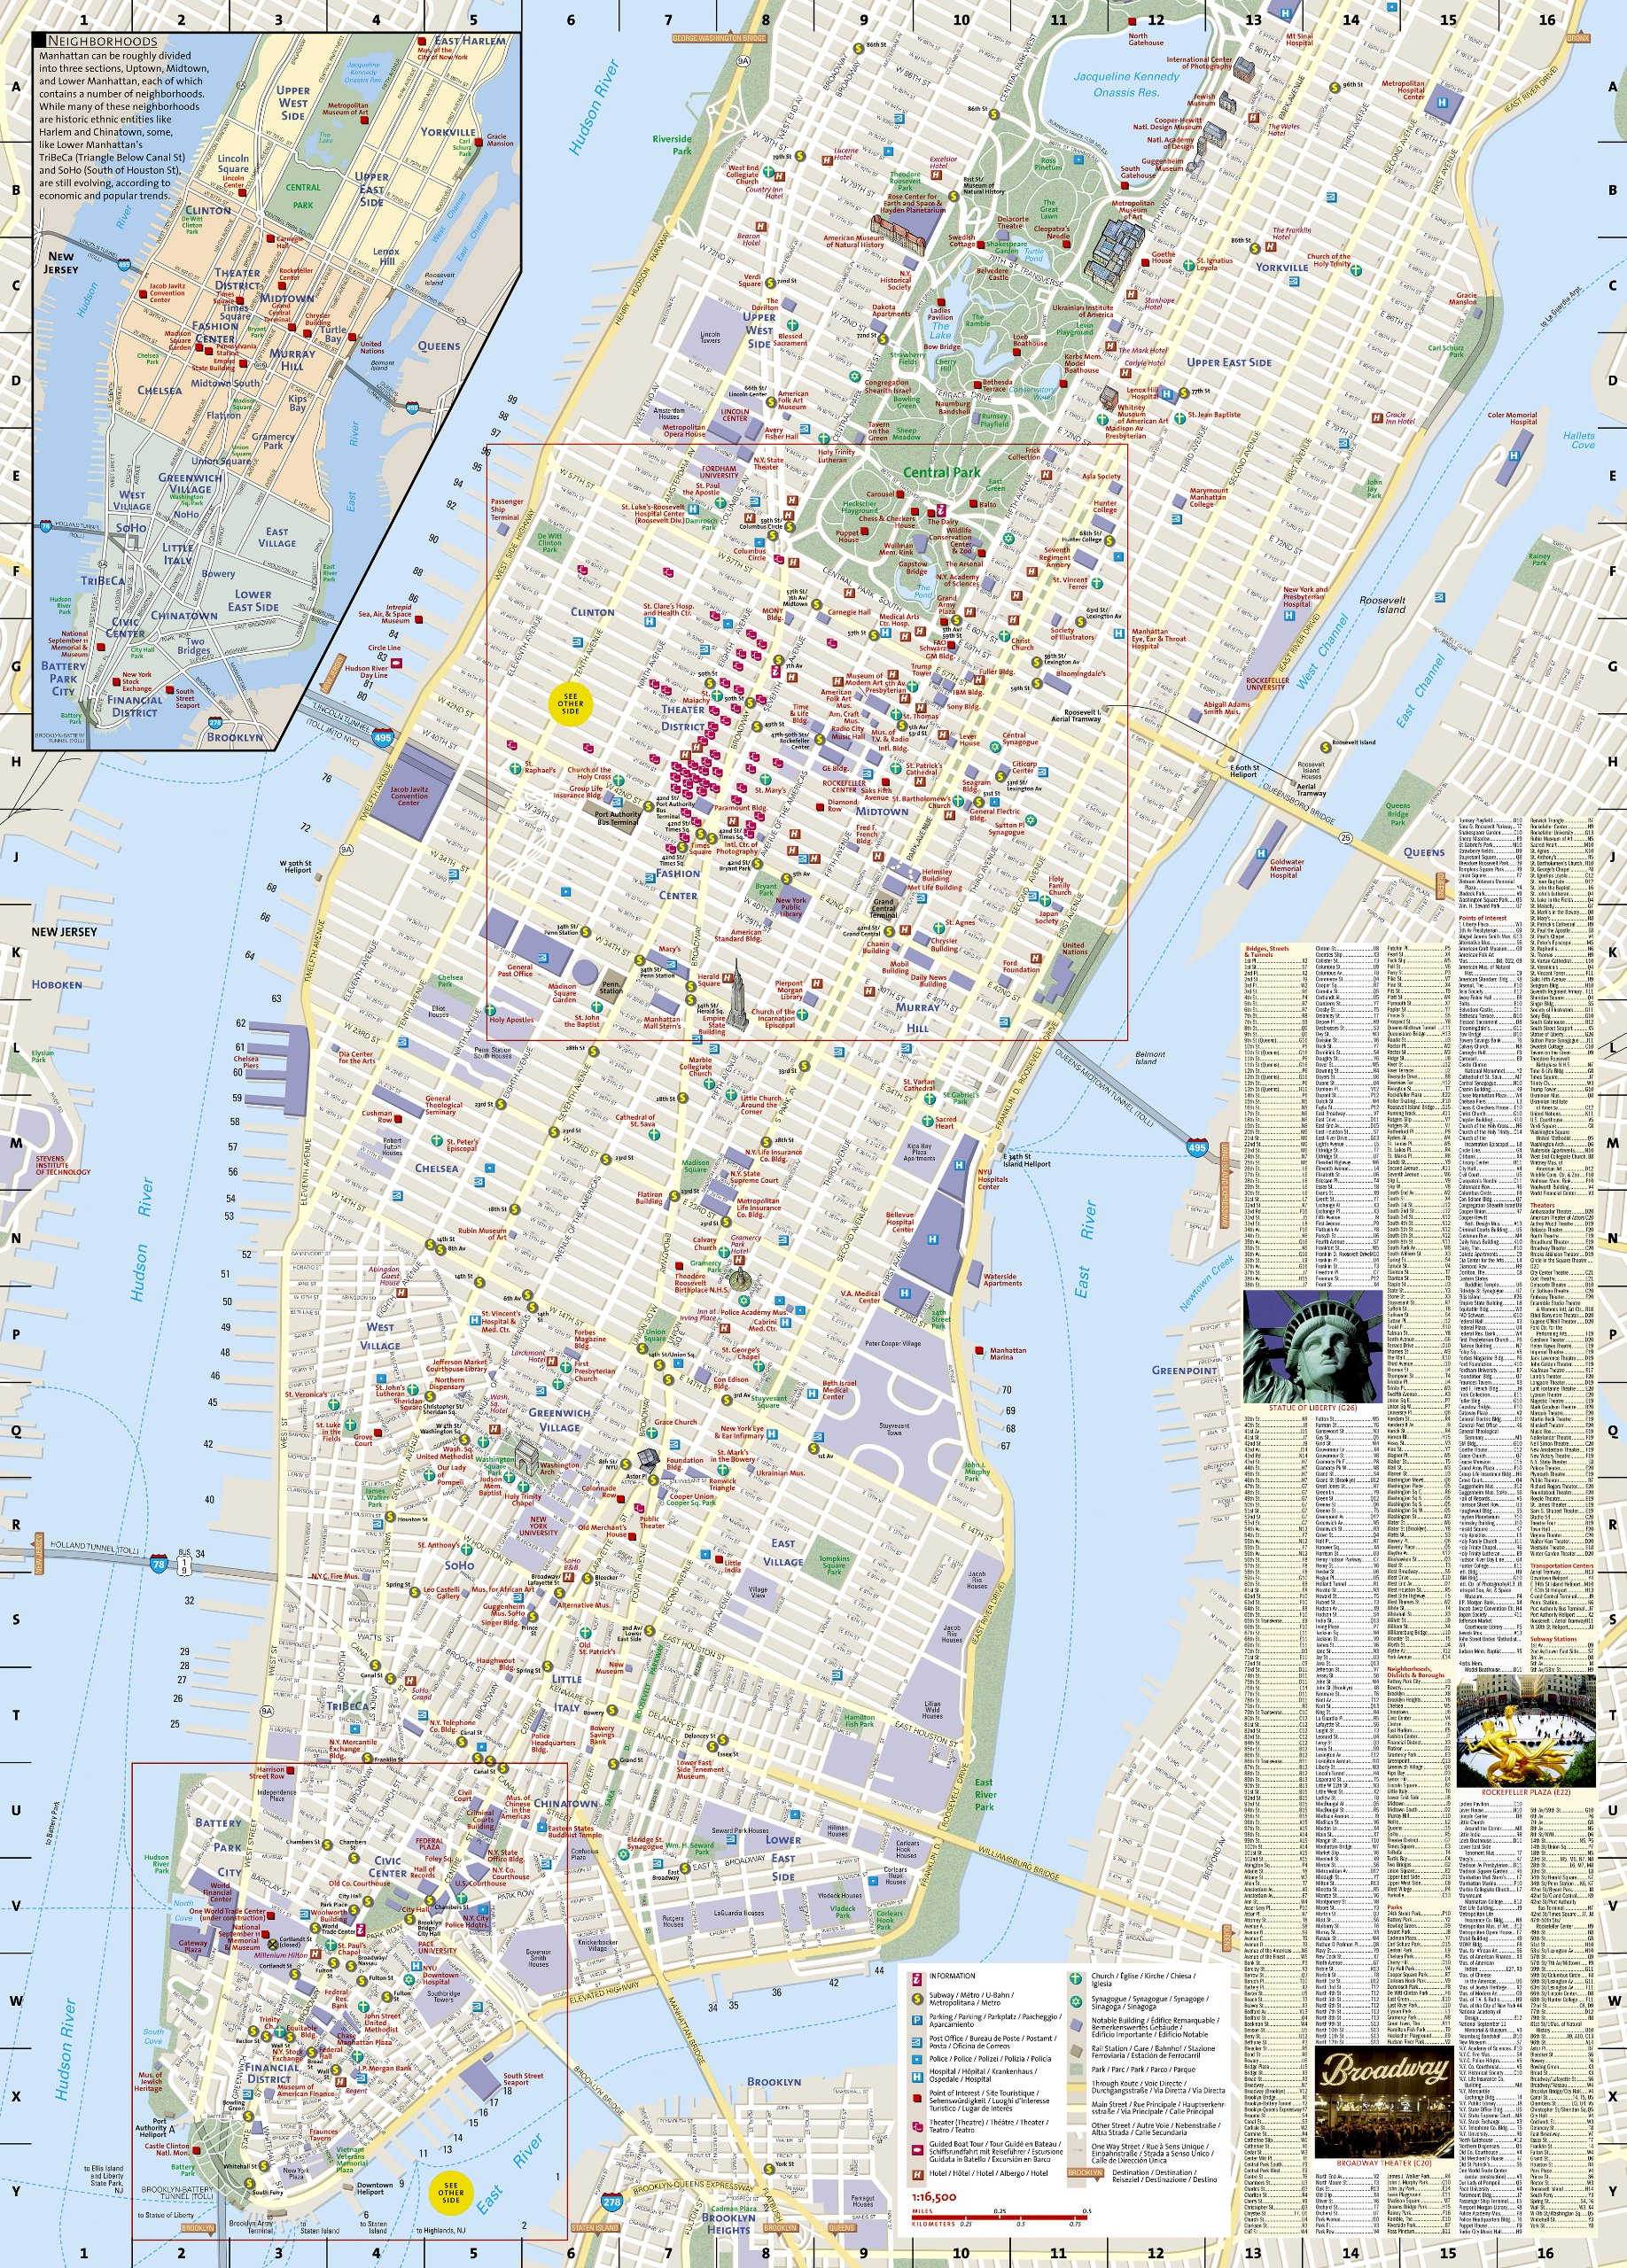 Map Of New York New York Hotel.New York City National Geographic Destination City Map National